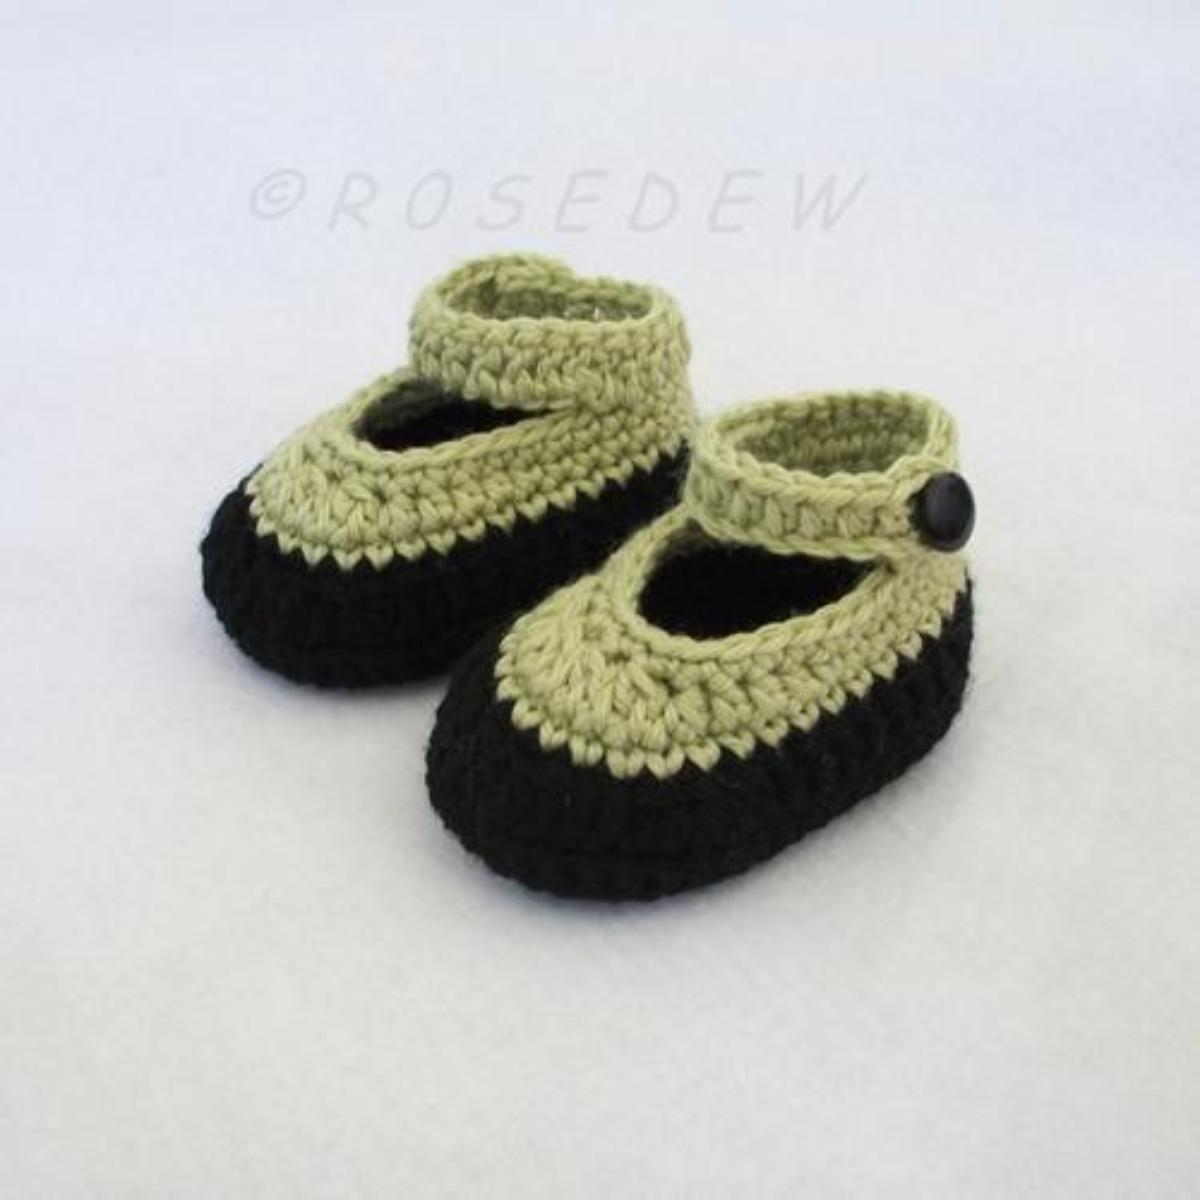 Crochet Baby Booties with Ankle Strap Pattern